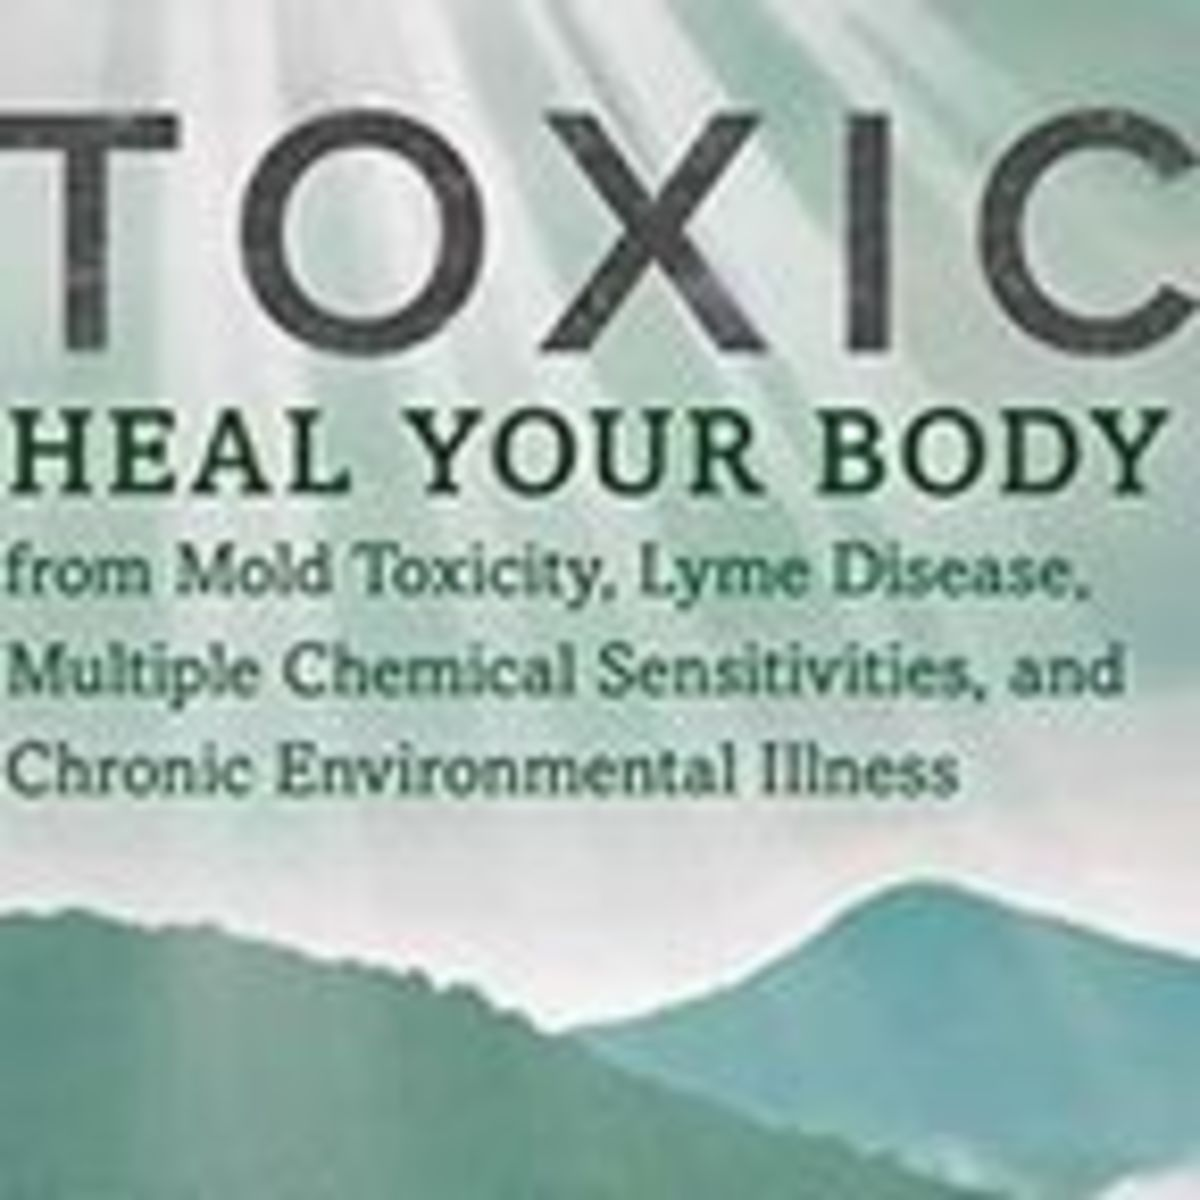 Psychiatric Symptoms, Mold and Environmental Toxicity